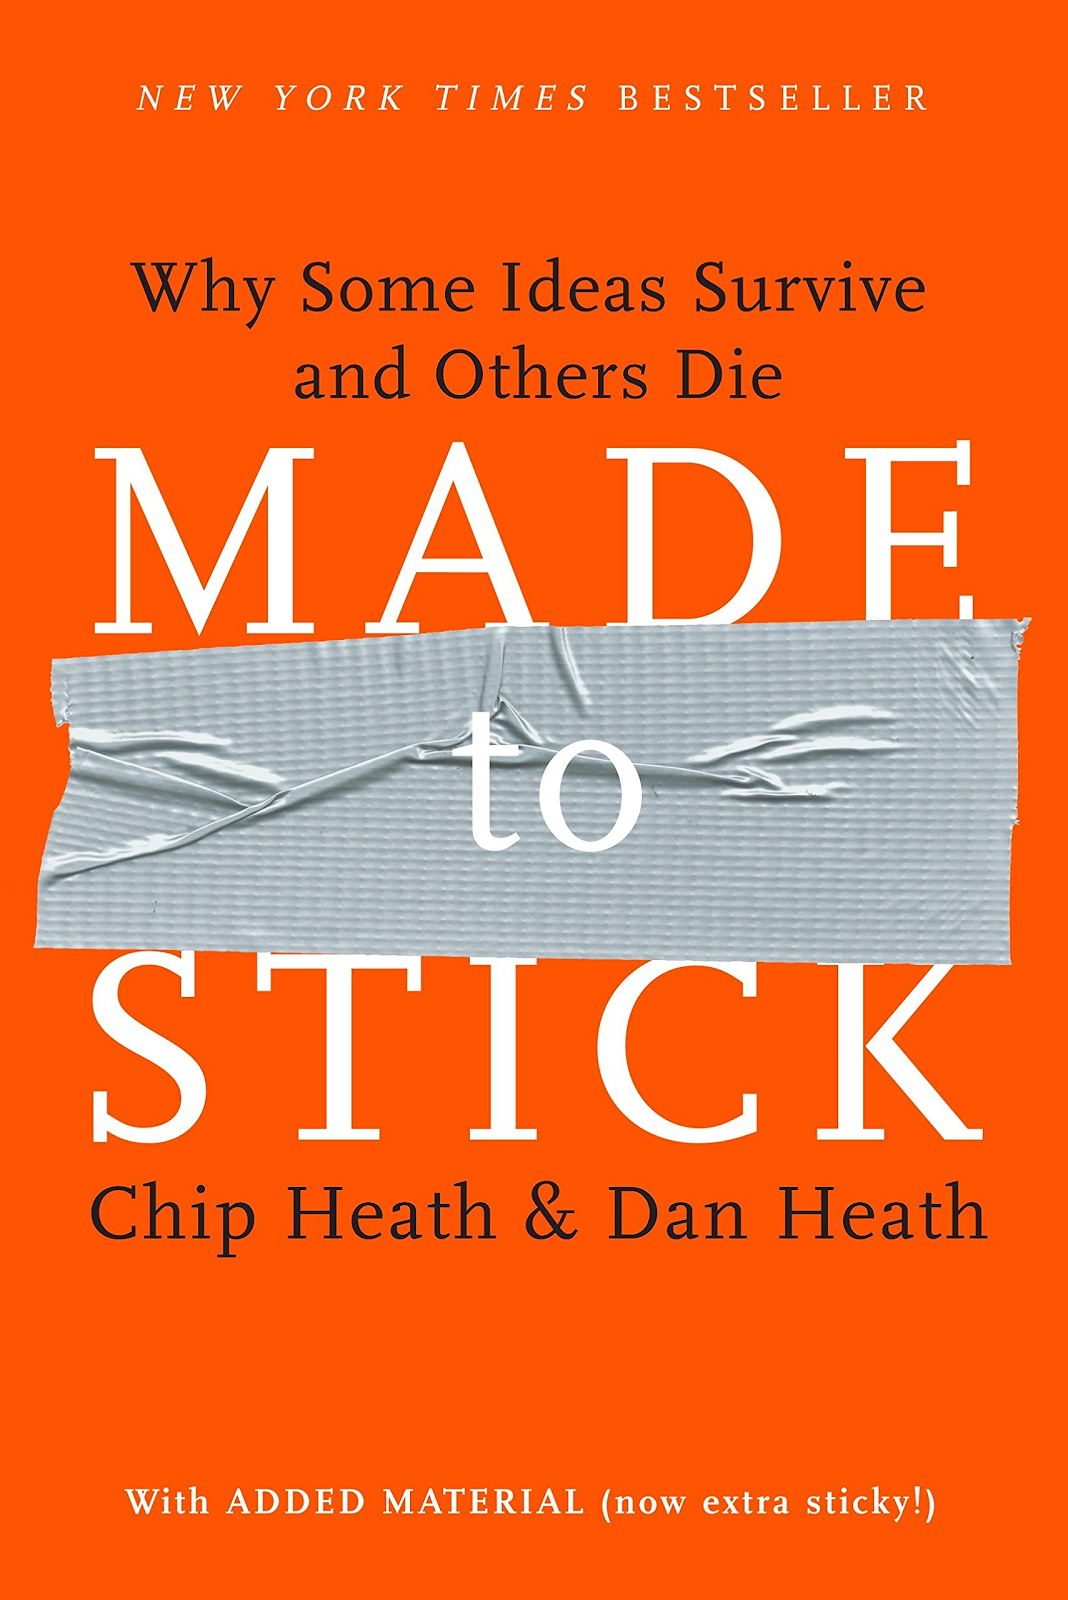 made to stick talks about making ideas memorable